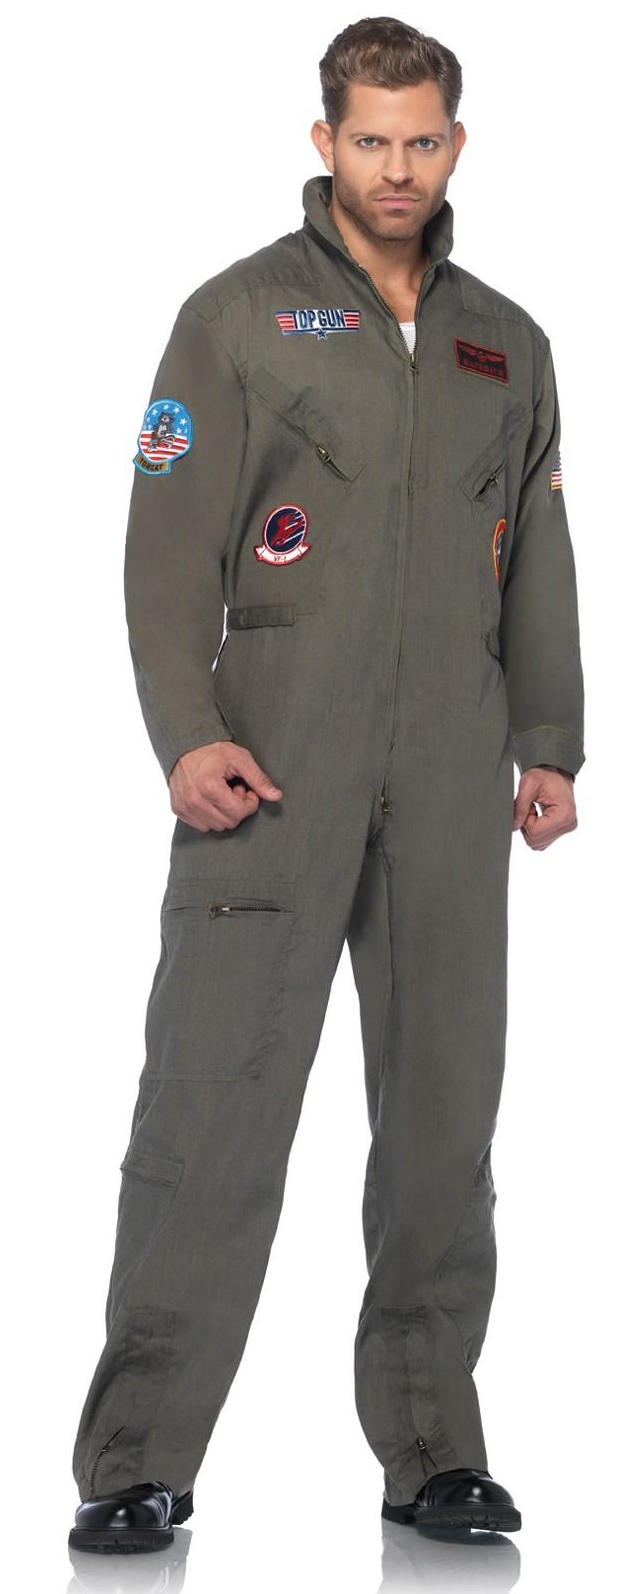 top gun mens flight suit costume